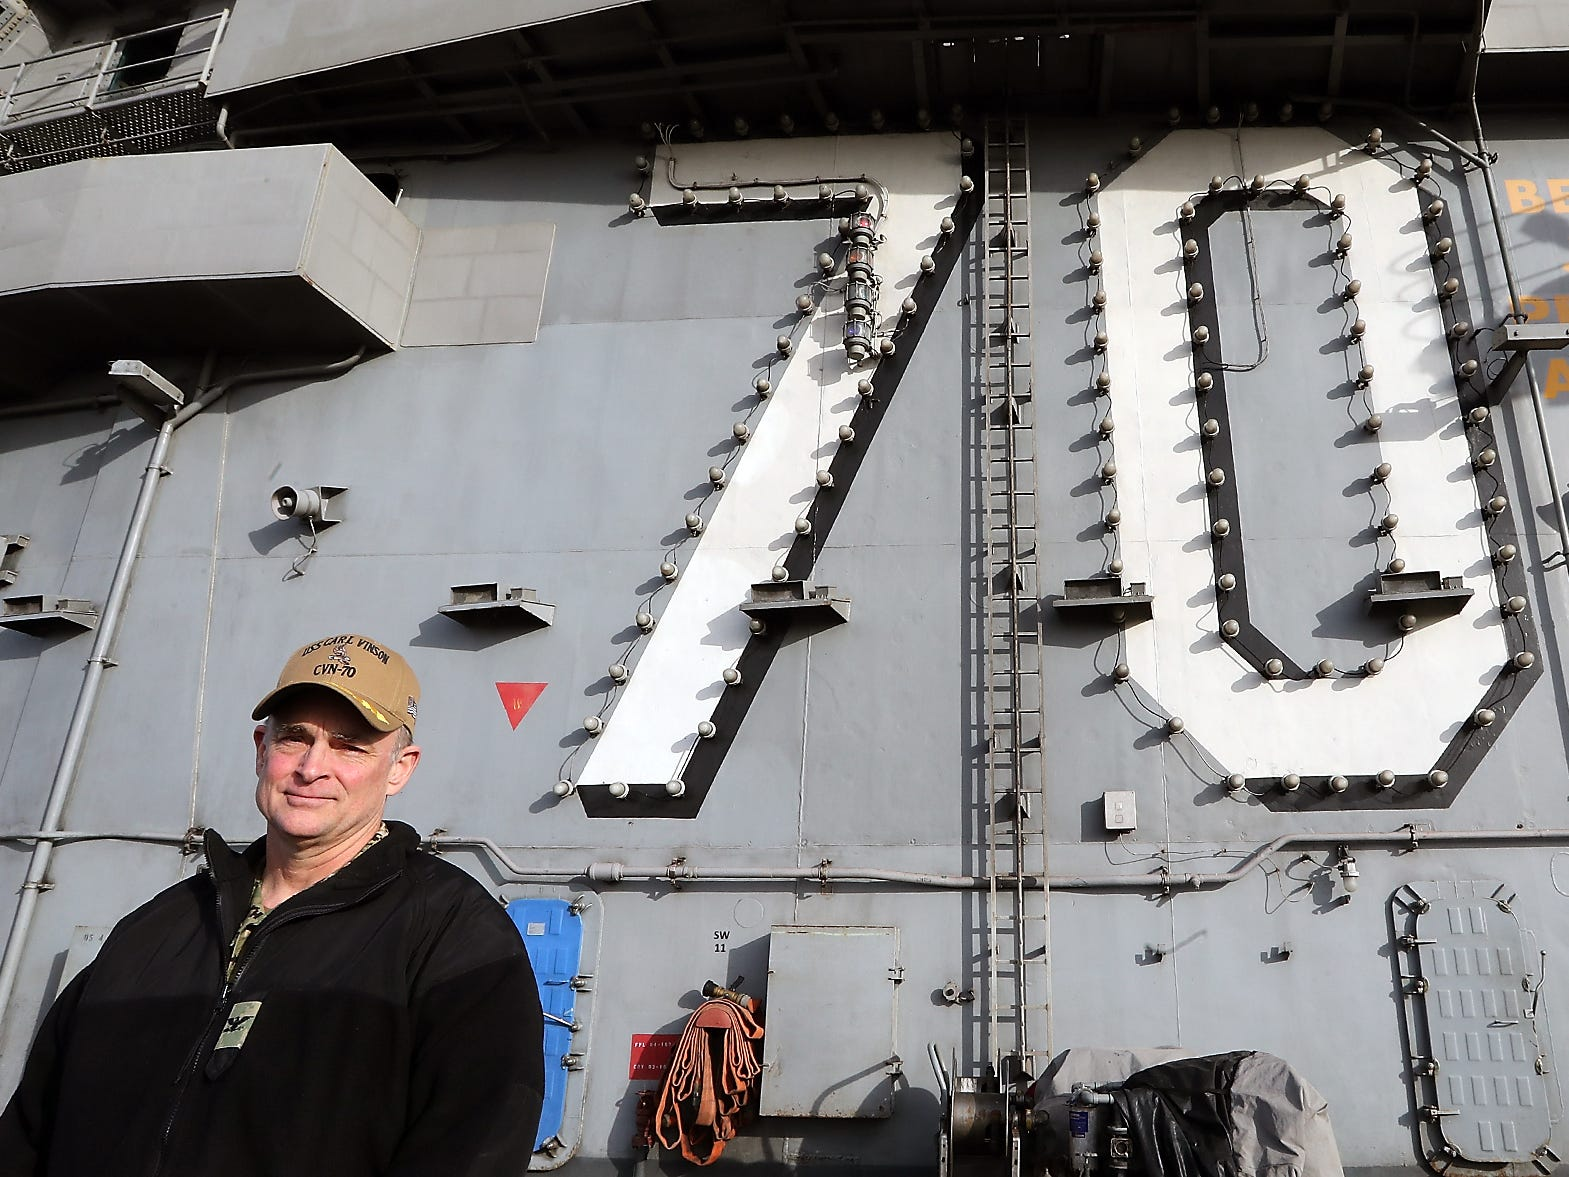 Capt. Matthew Paradise, Commanding Officer of the USS Carl Vinson aboard his ship at Naval Base Kitsap Bremerton on Monday, January 28, 2019.